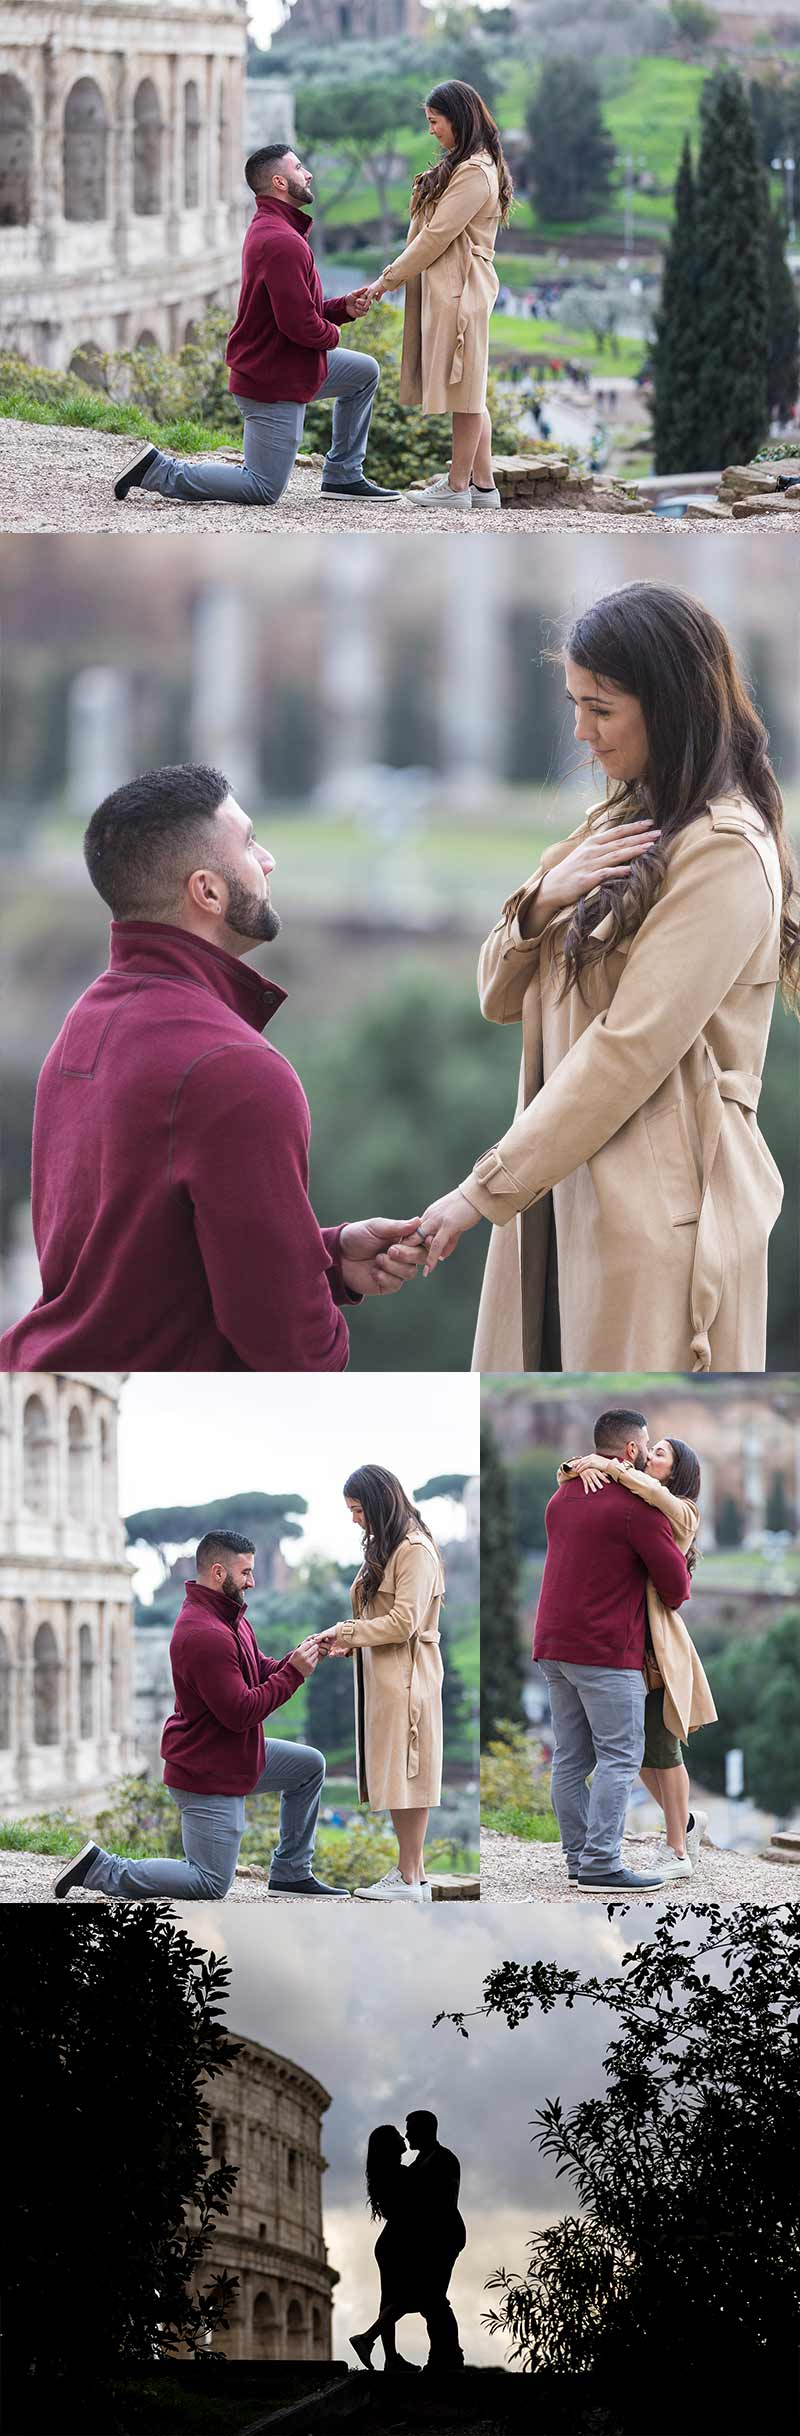 Surprise wedding proposal photographed by the Andrea Matone photography studio at the Roman Colosseum. Rome Colosseum Proposal